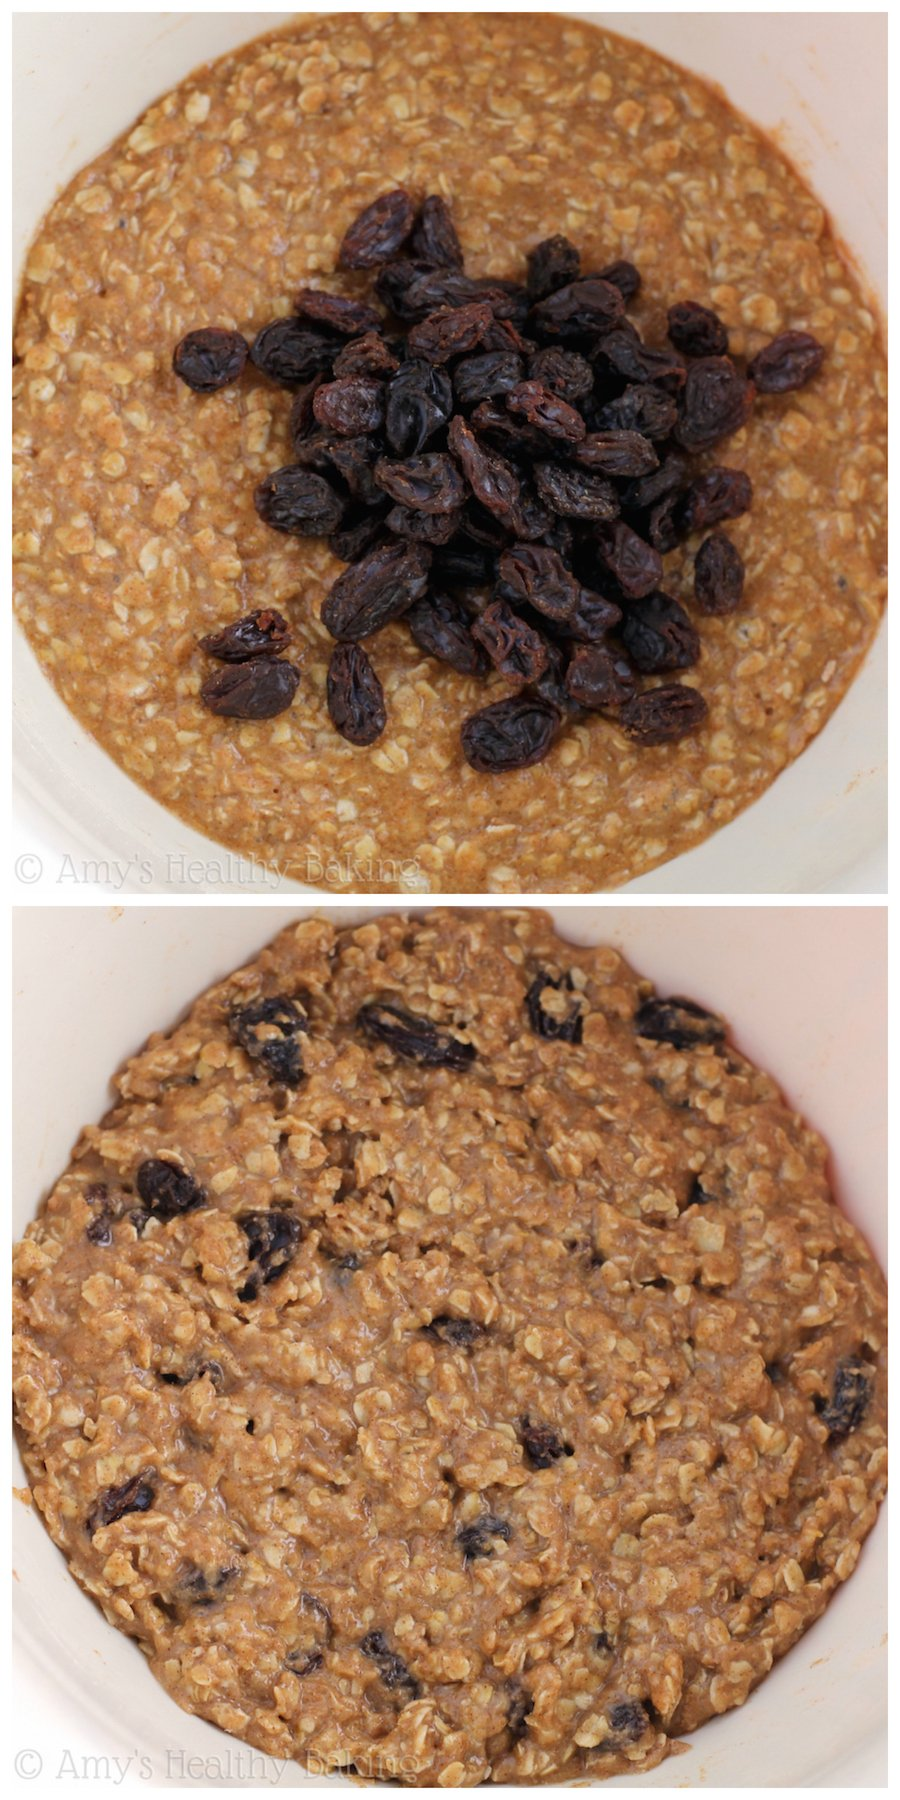 Cinnamon Raisin Oatmeal Chocolate Sheet Cake